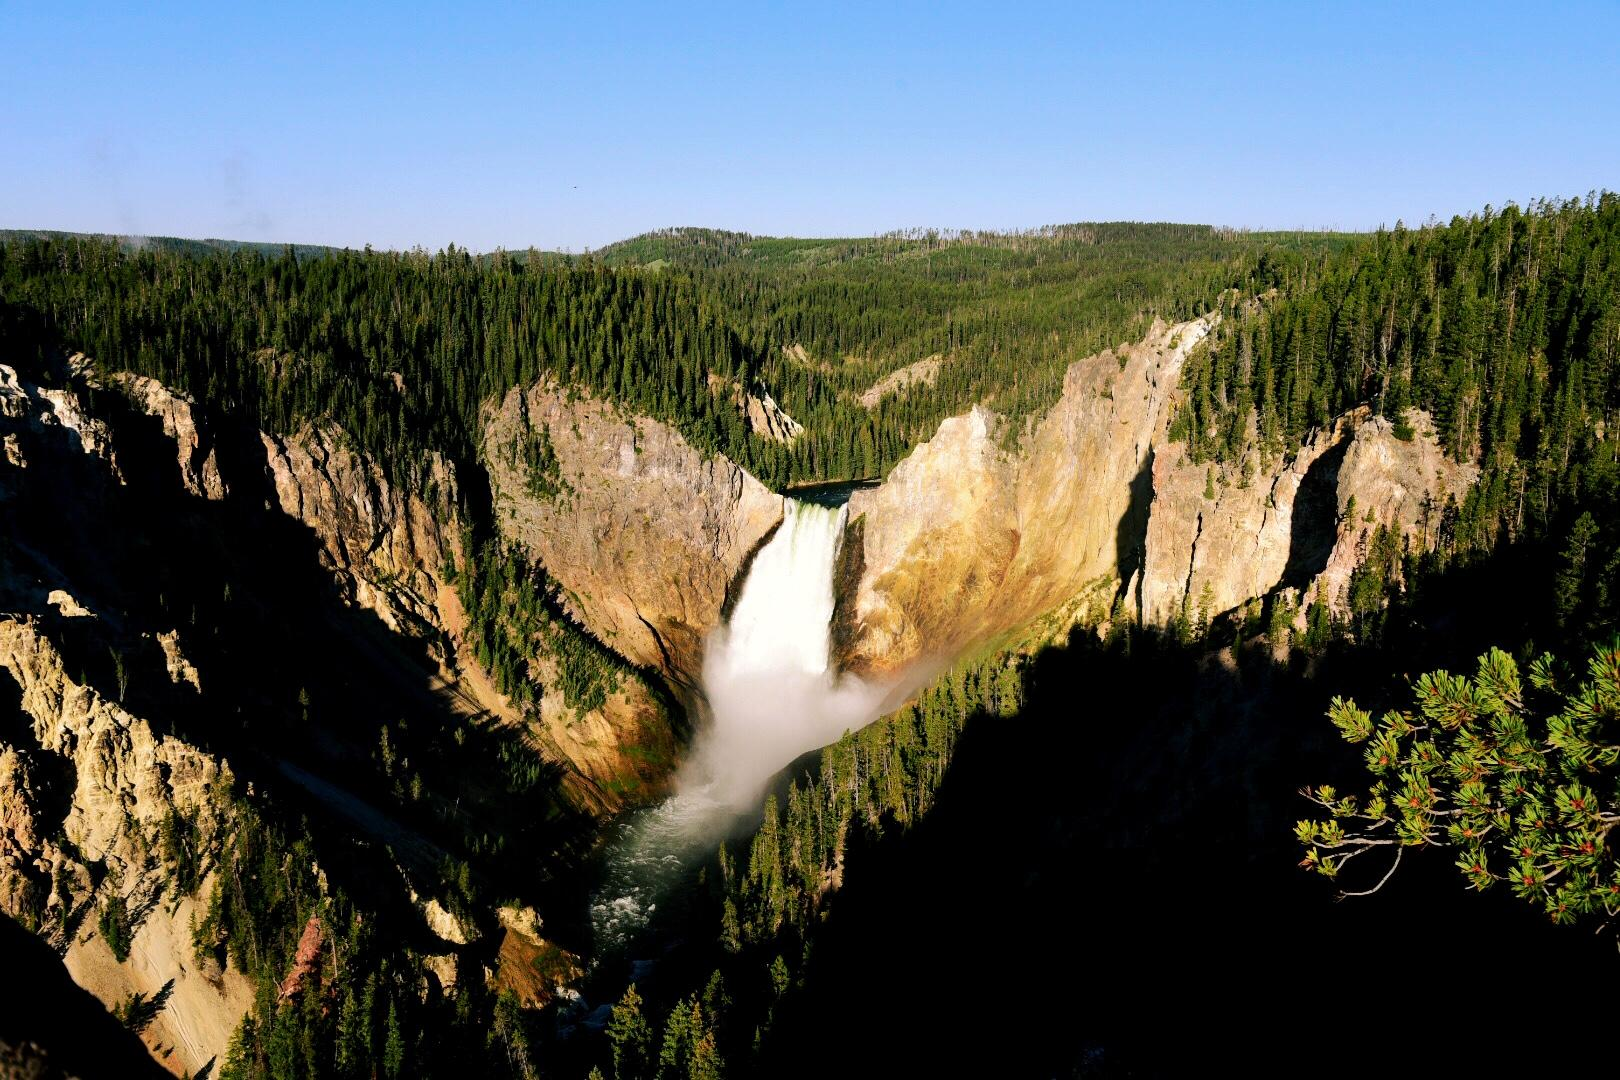 Yellowstone Falls consists of three falls with the Lower Falls being the most popular and the ones that Thomas Moran painted in his famous painting. (Image: Rebecca Mongrain/Seattle Refined)